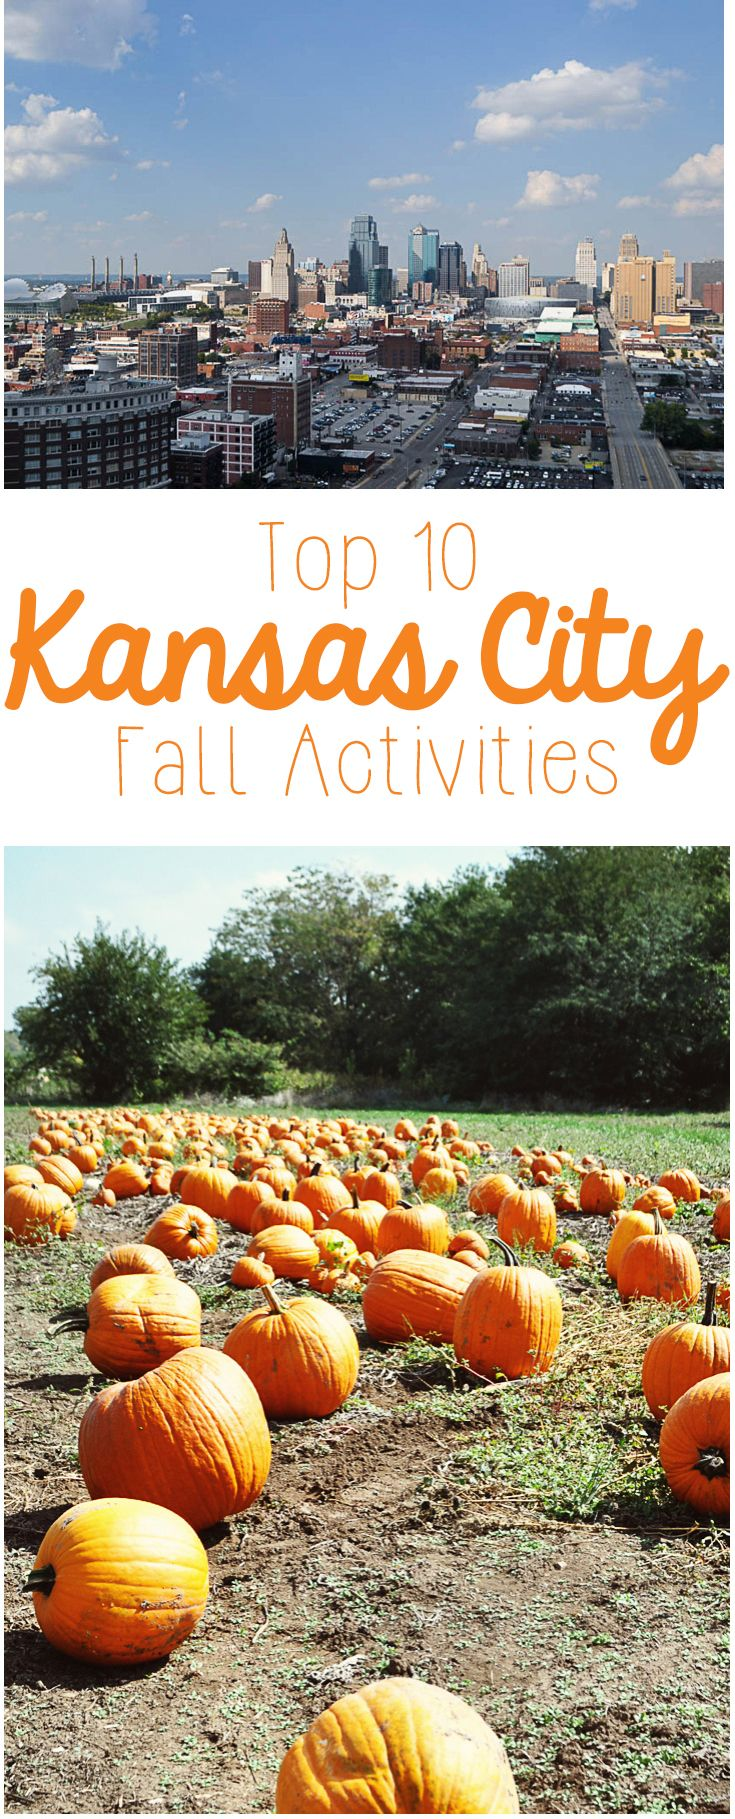 Looking for something awesome to do this fall in Kansas City? Here's the full list of the top 10 best things to do in Kansas City during the fall if you have a family or children! These are all family friendly and oh-so-fun, so start tackling your Fall Bucket List now!